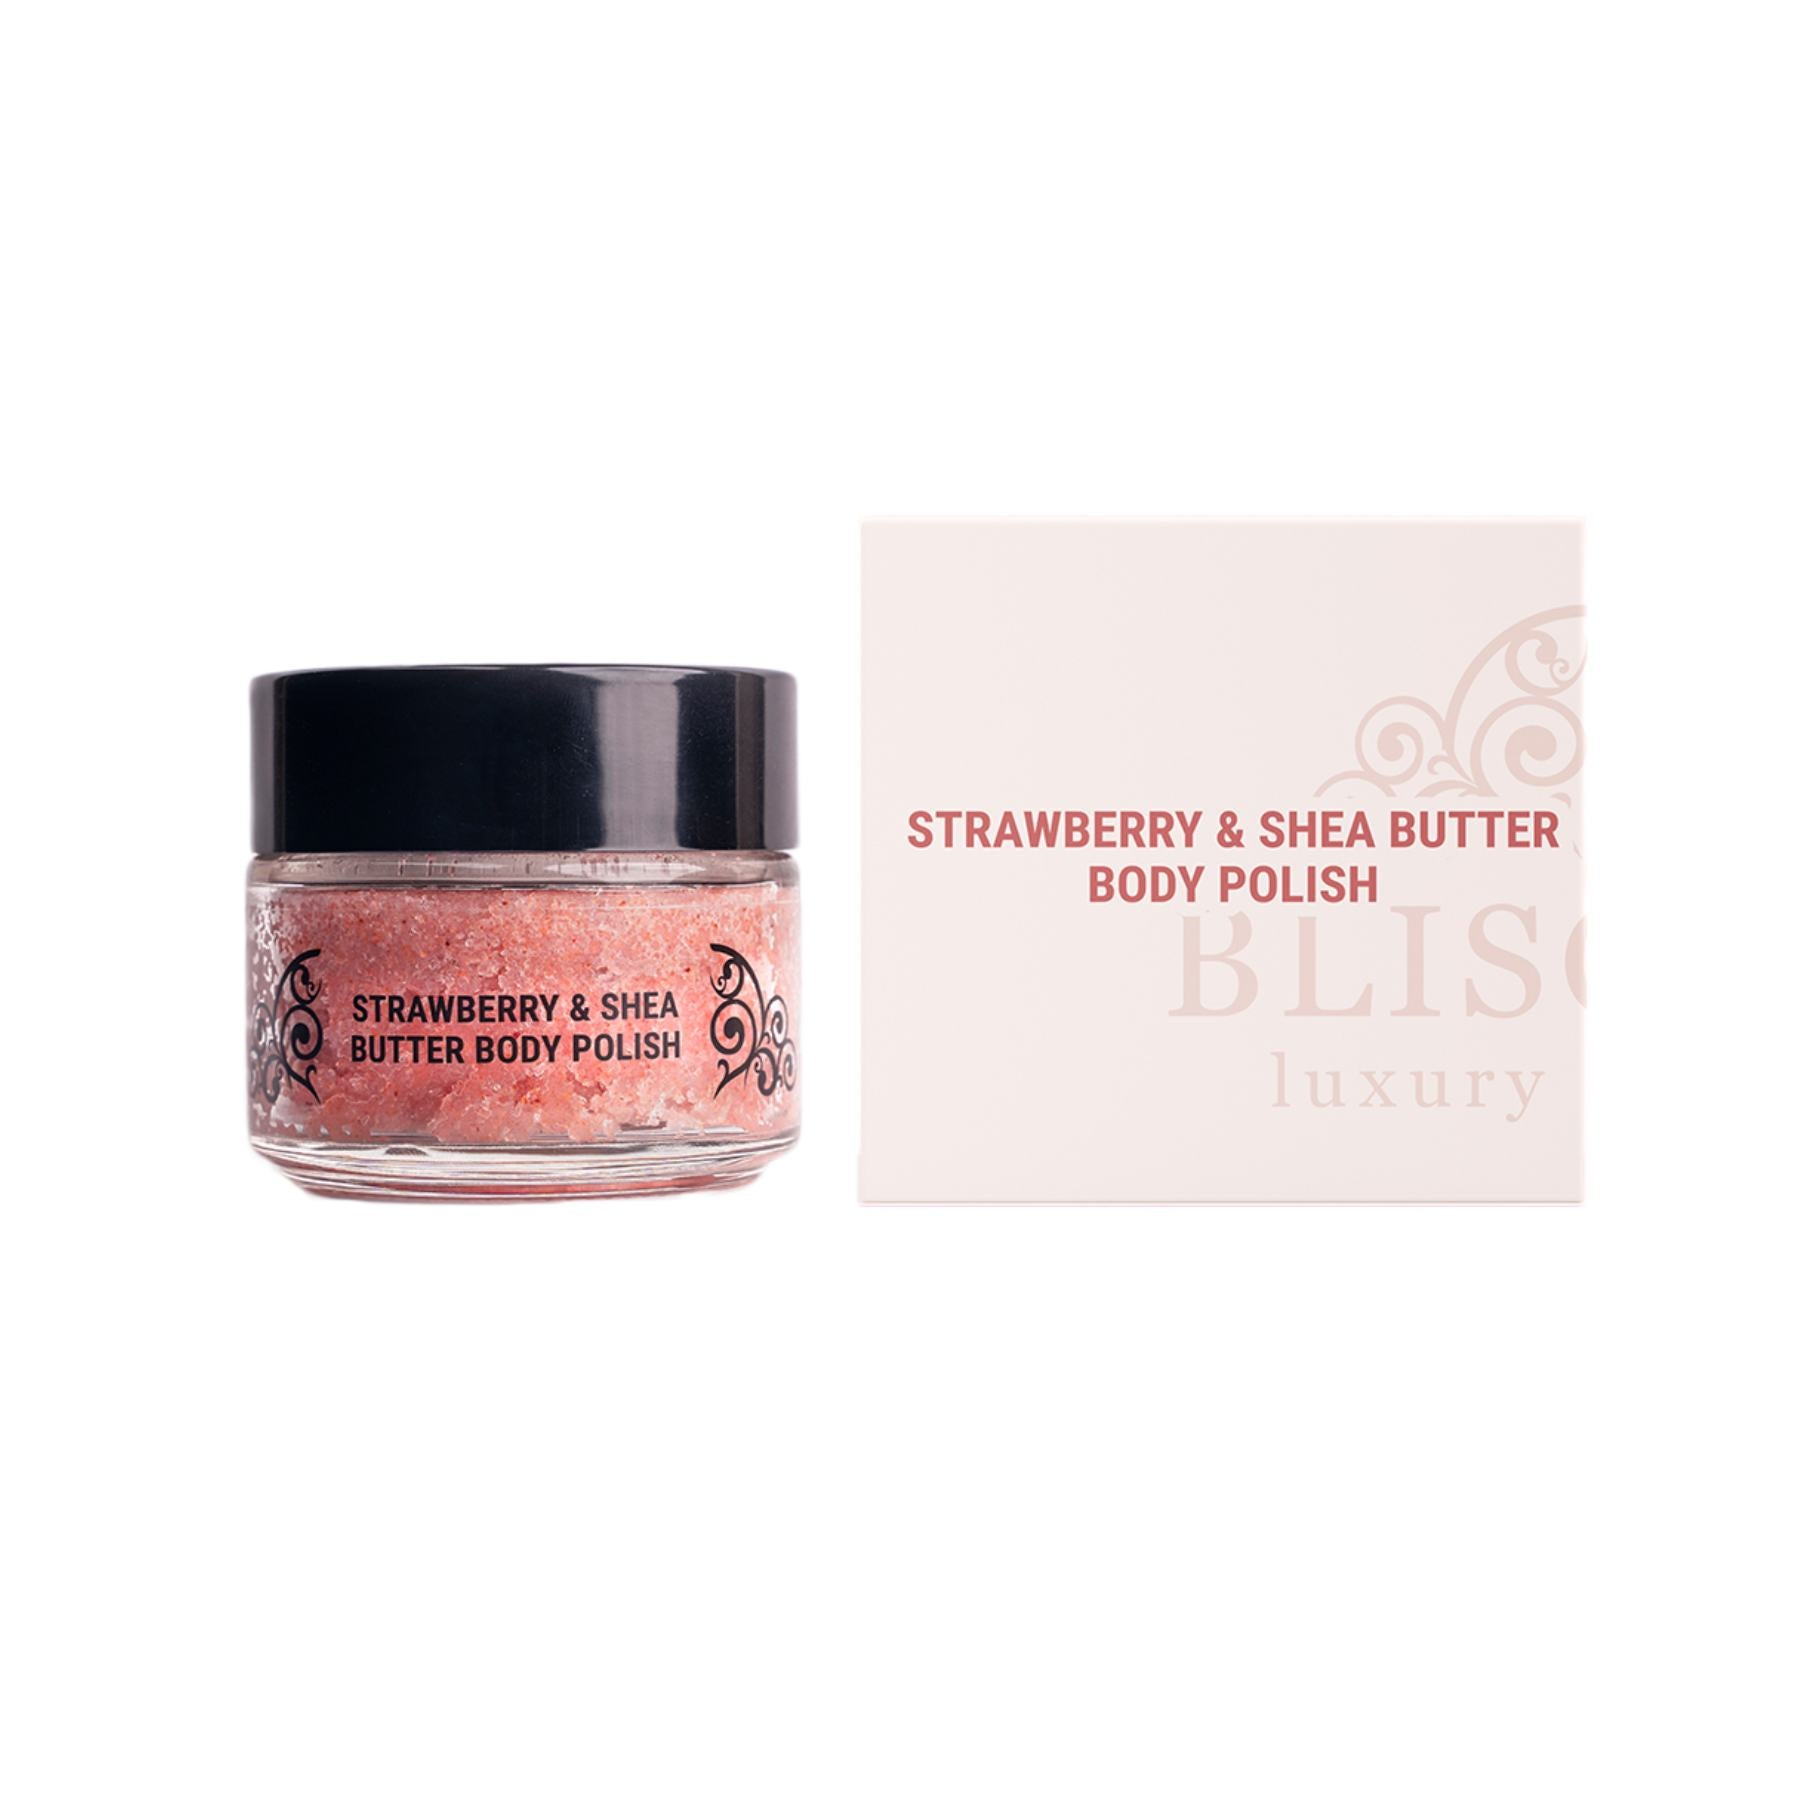 This is an image of Strawberry and Shea butter body polish from Bliscent on www.sublimelife.in.